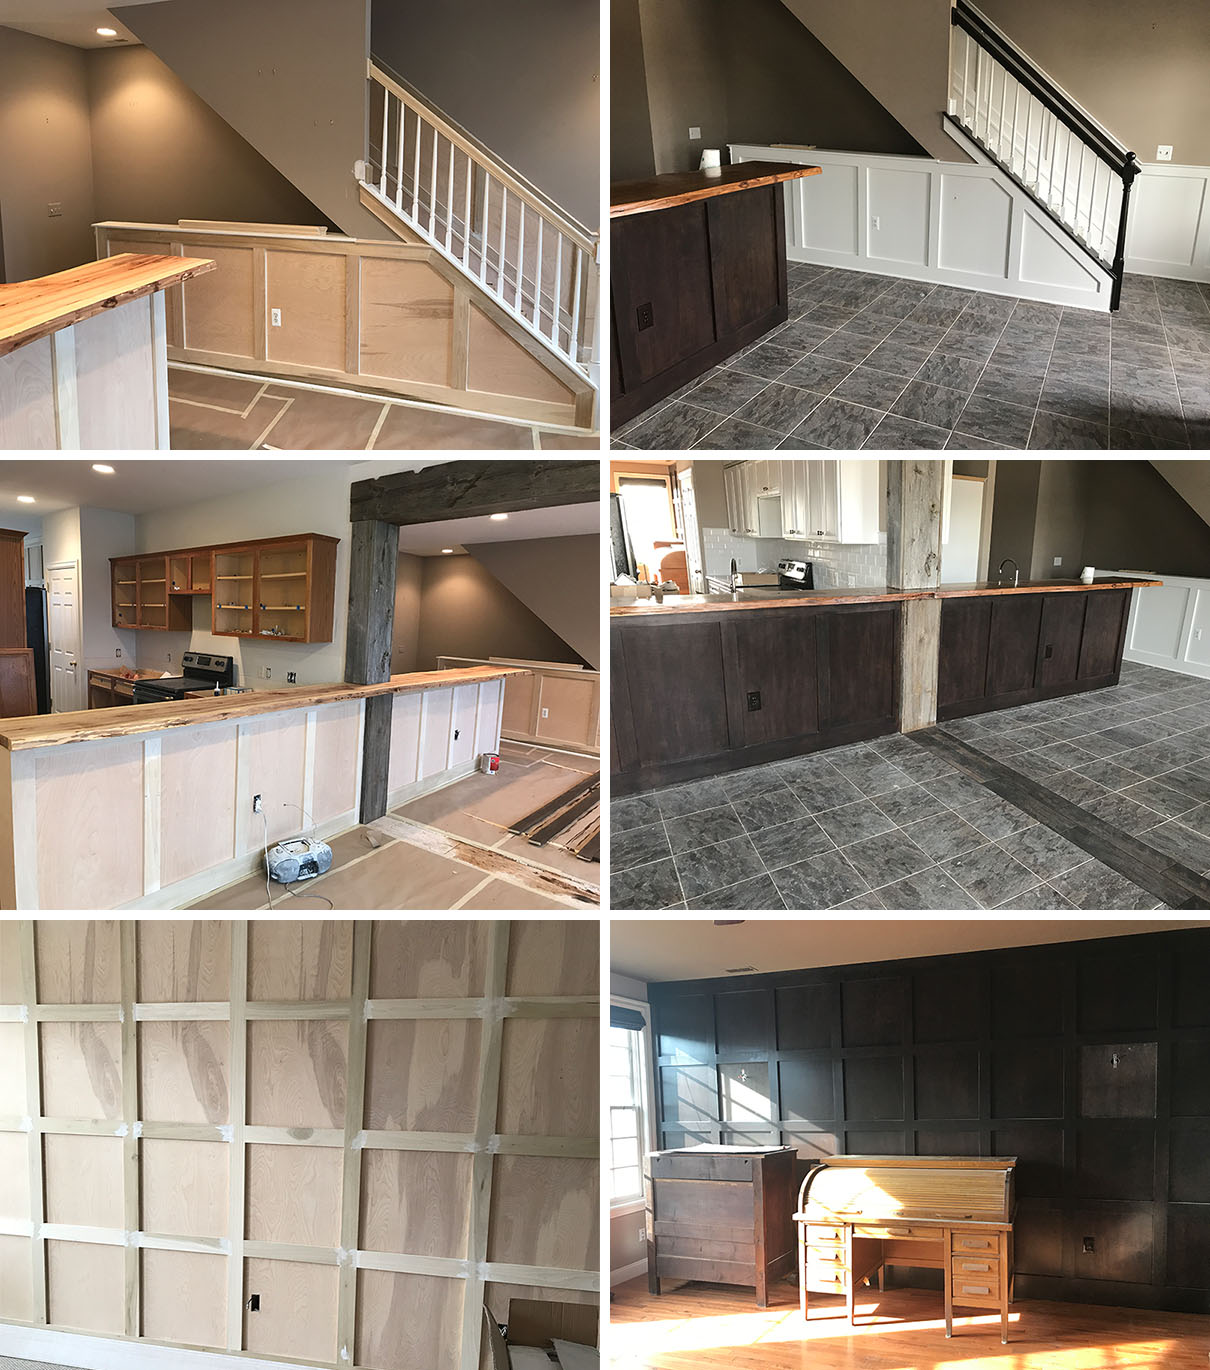 Remodeling and Painting Clinton Township Michigan